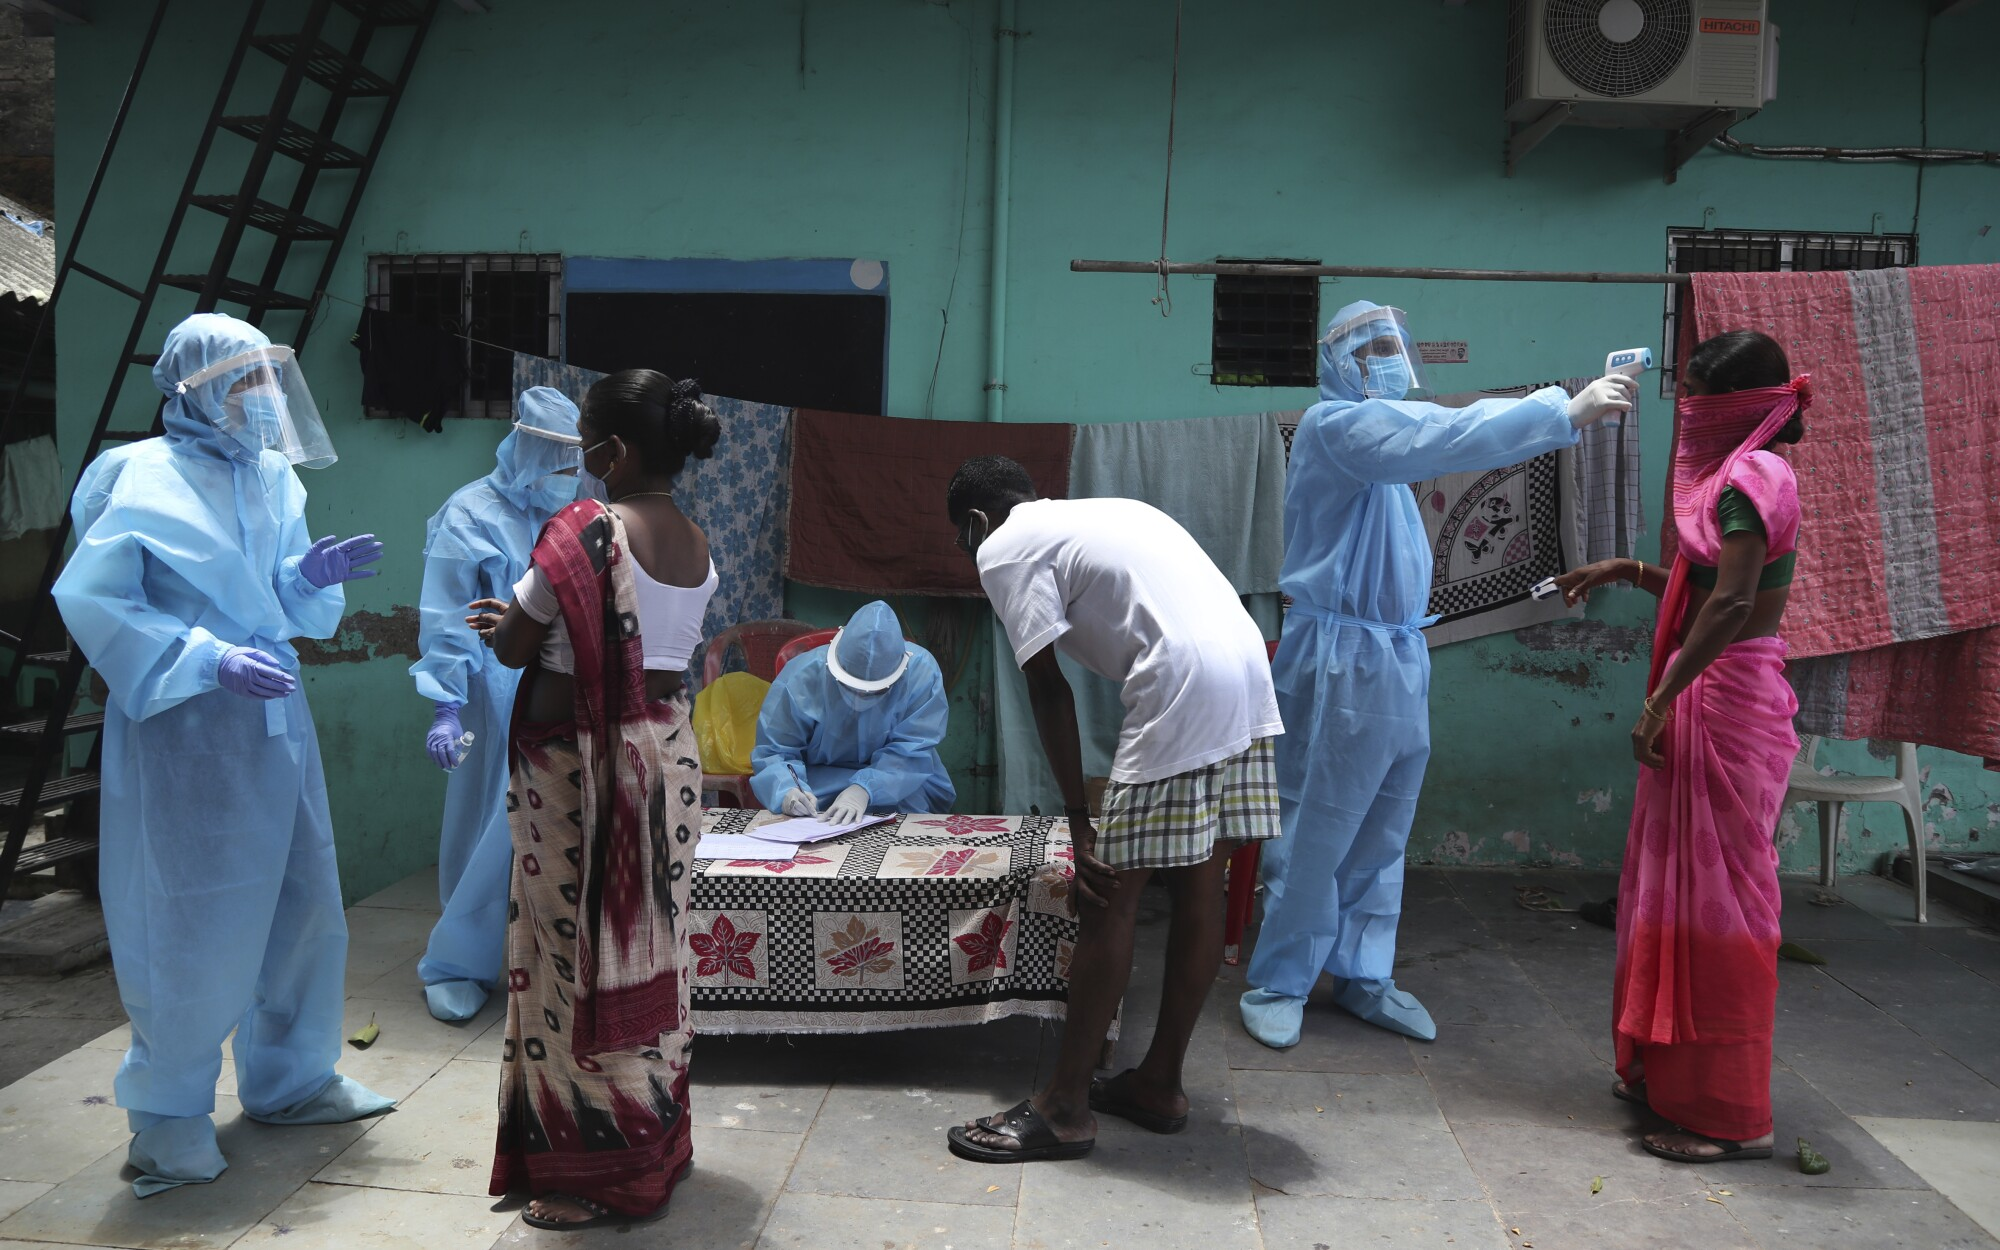 Doctors conduct a free medical camp in Dharavi, a slum in Mumbai, India.